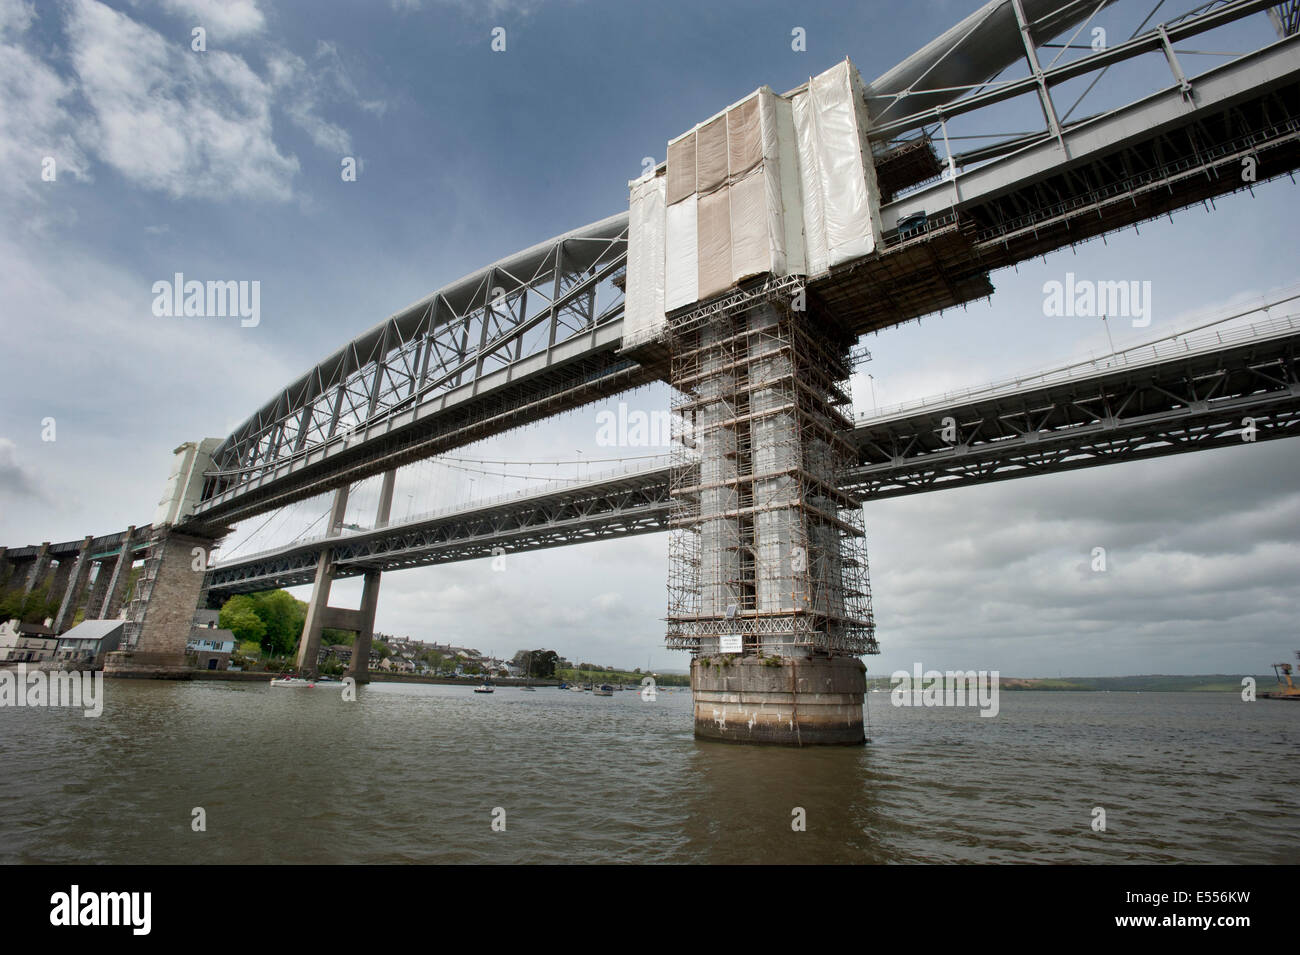 Scaffolding covers the support pillars of The Royal Albert Railway Bridge designed by Isambard Kingdom Brunel. - Stock Image